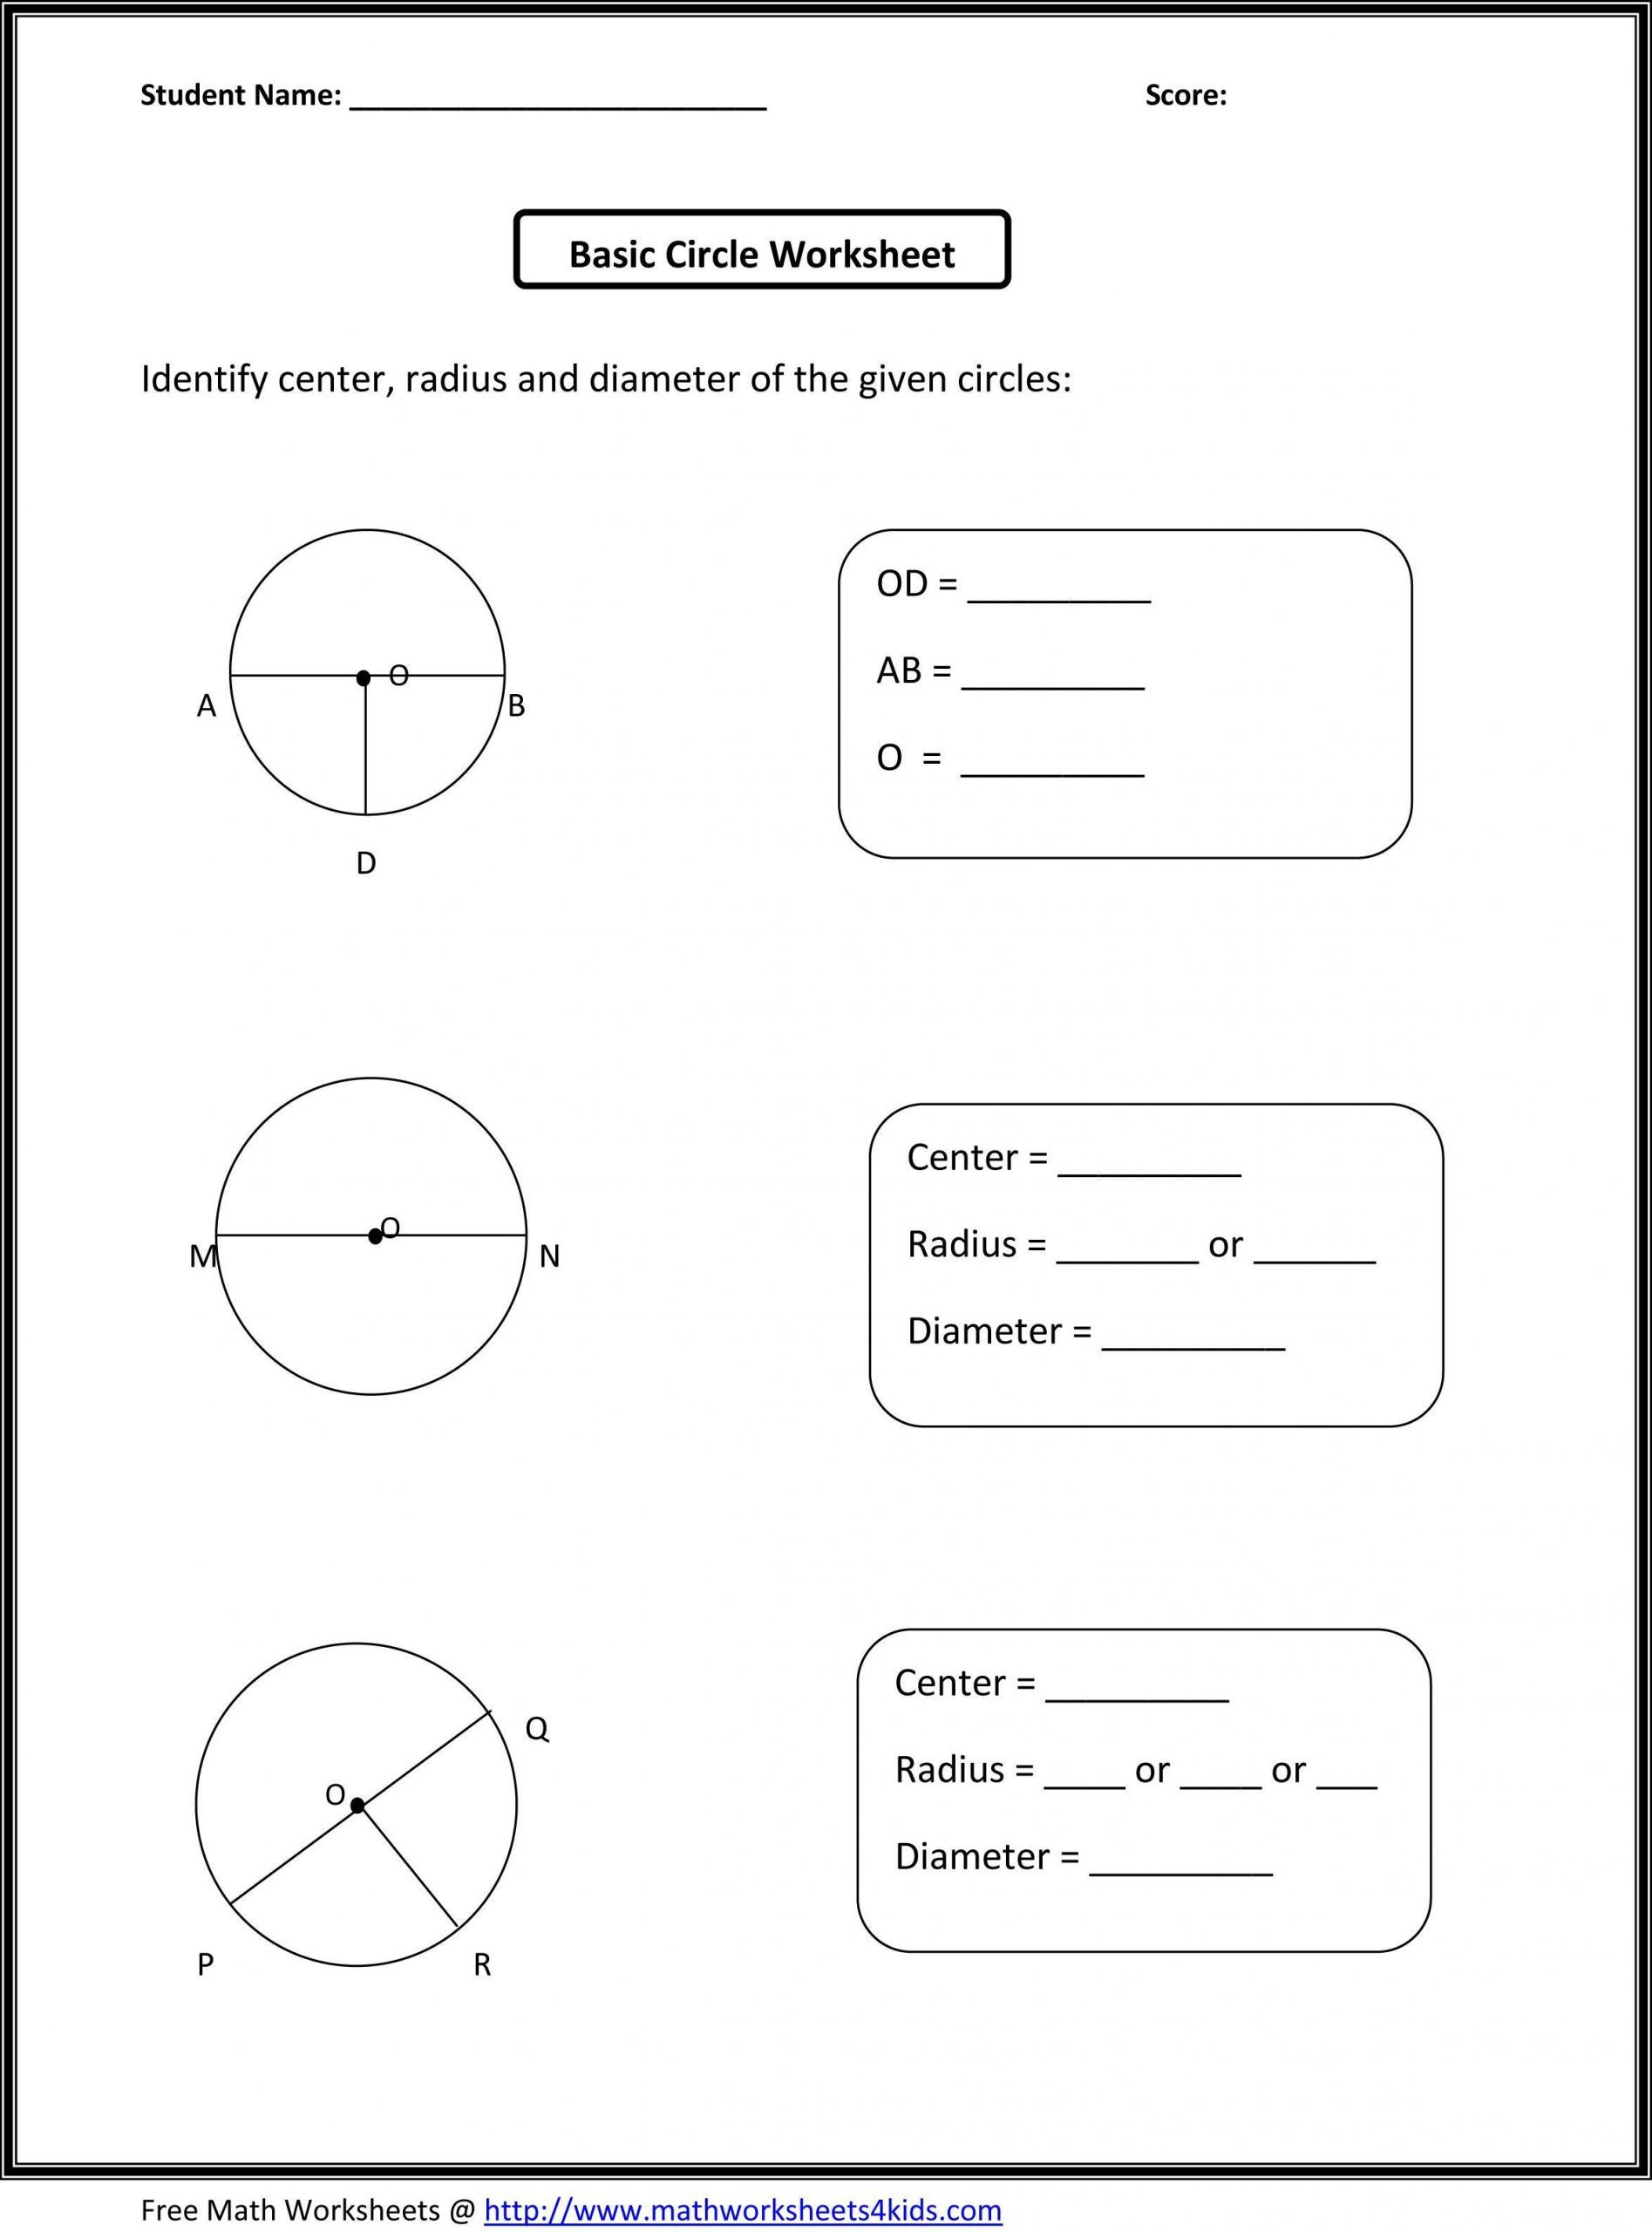 6 Weight Measurement Worksheet Printable Basic Circle